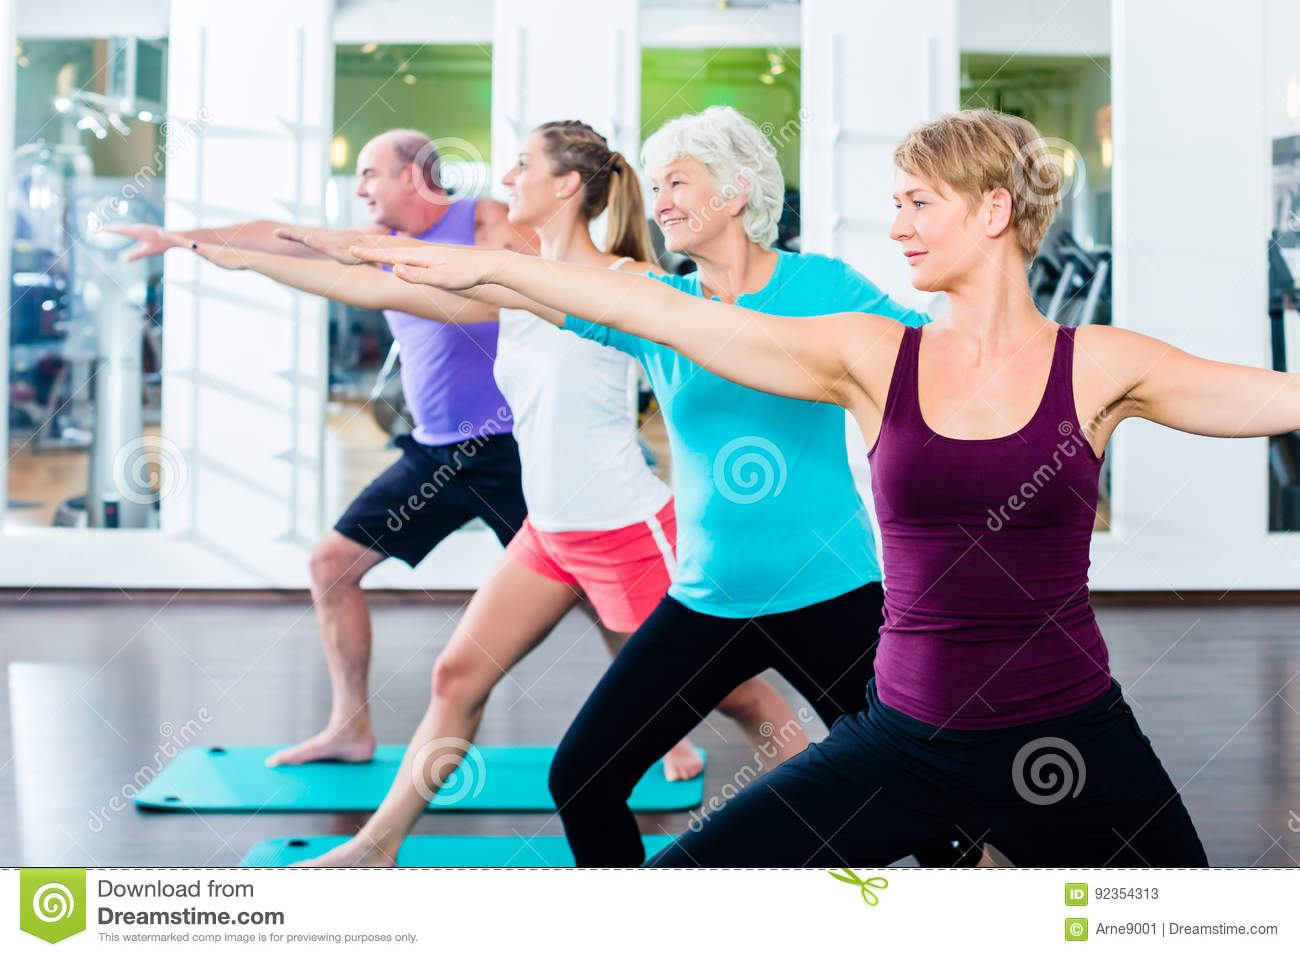 Senior and young people doing gymnastics in gym